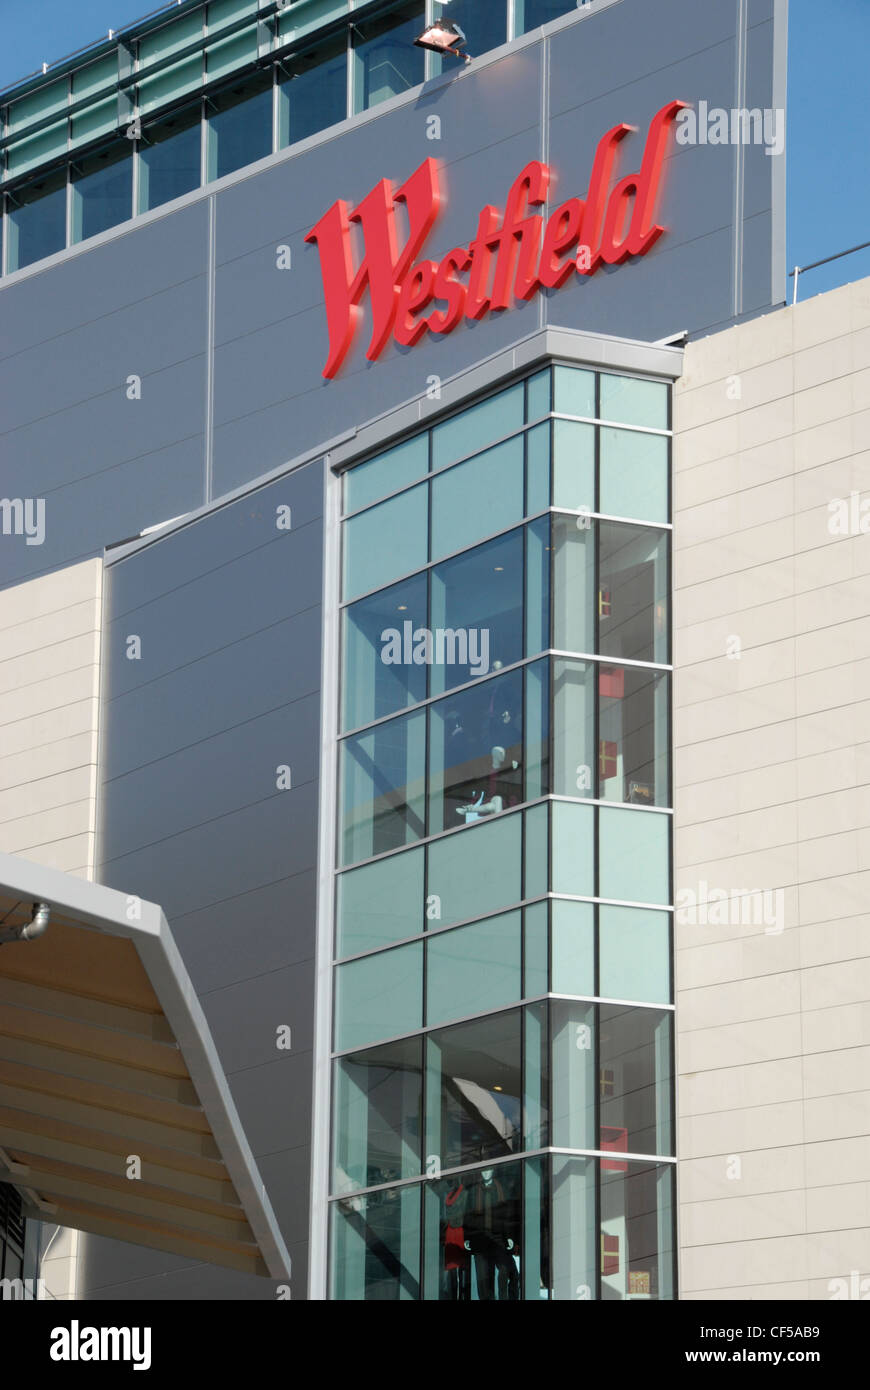 The Westfield Shopping Centre sign and exterior in Shepherds Bush. Stock Photo